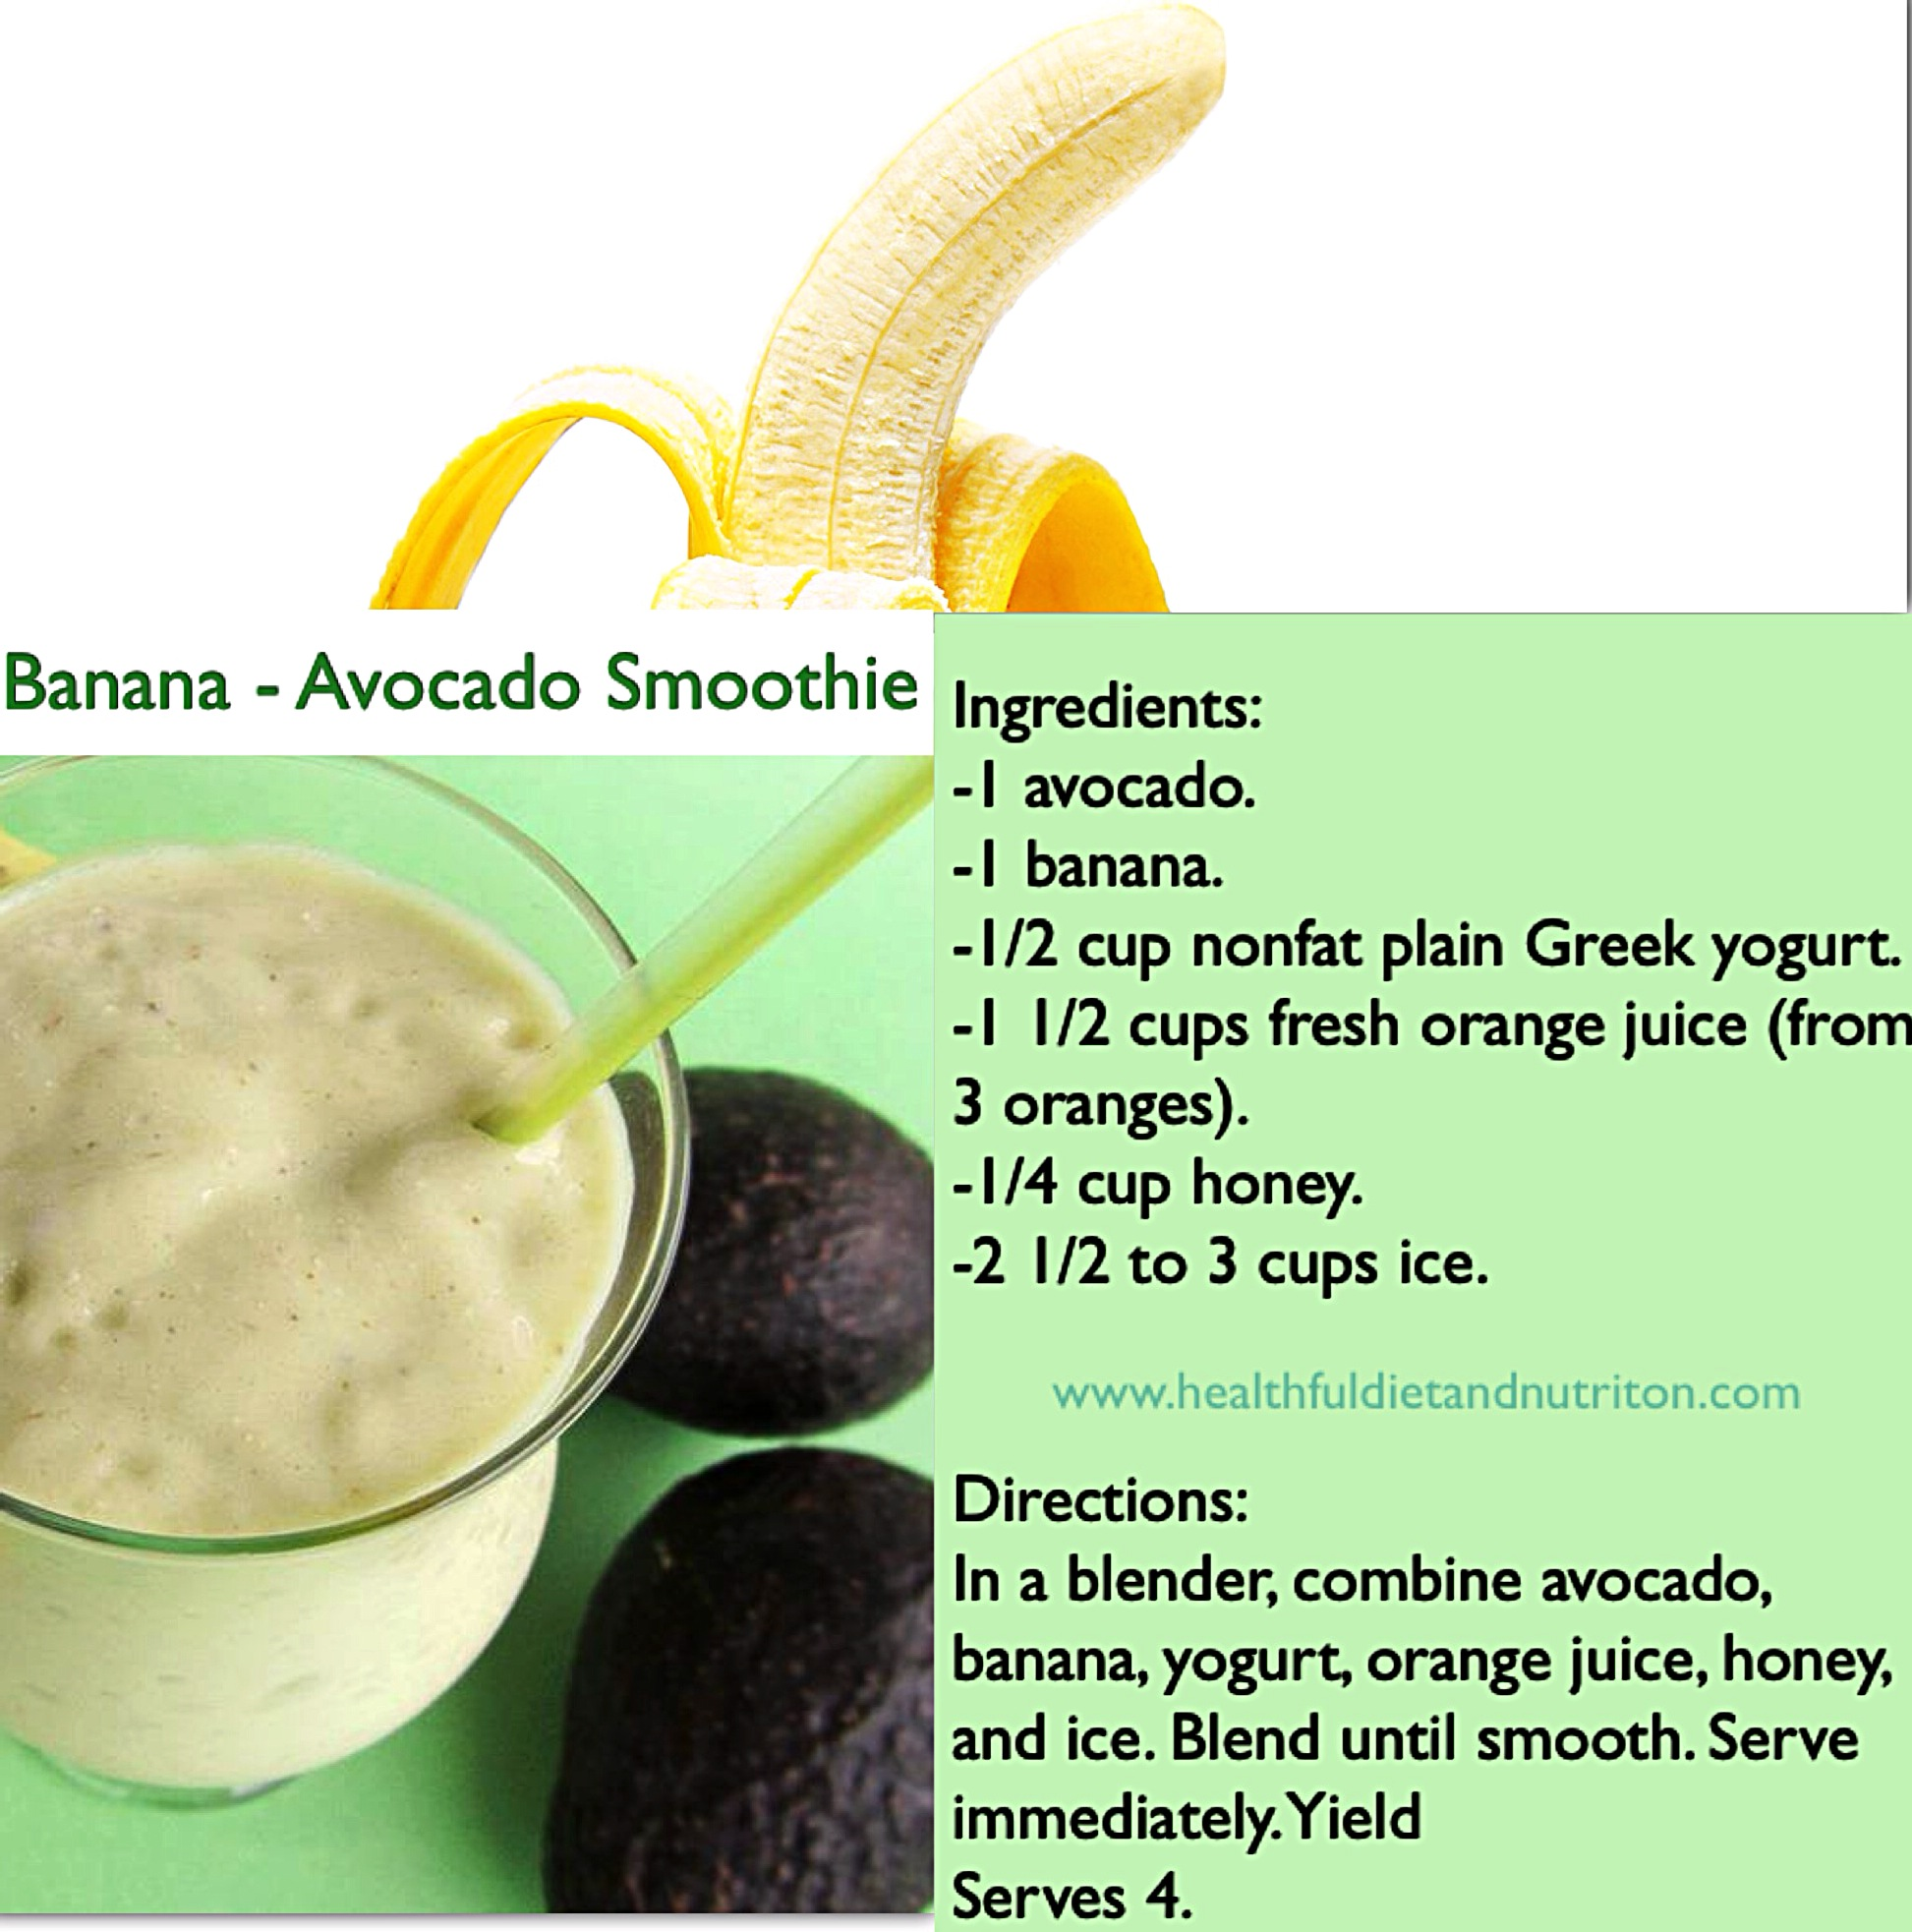 Banana-Avocado Smoothie